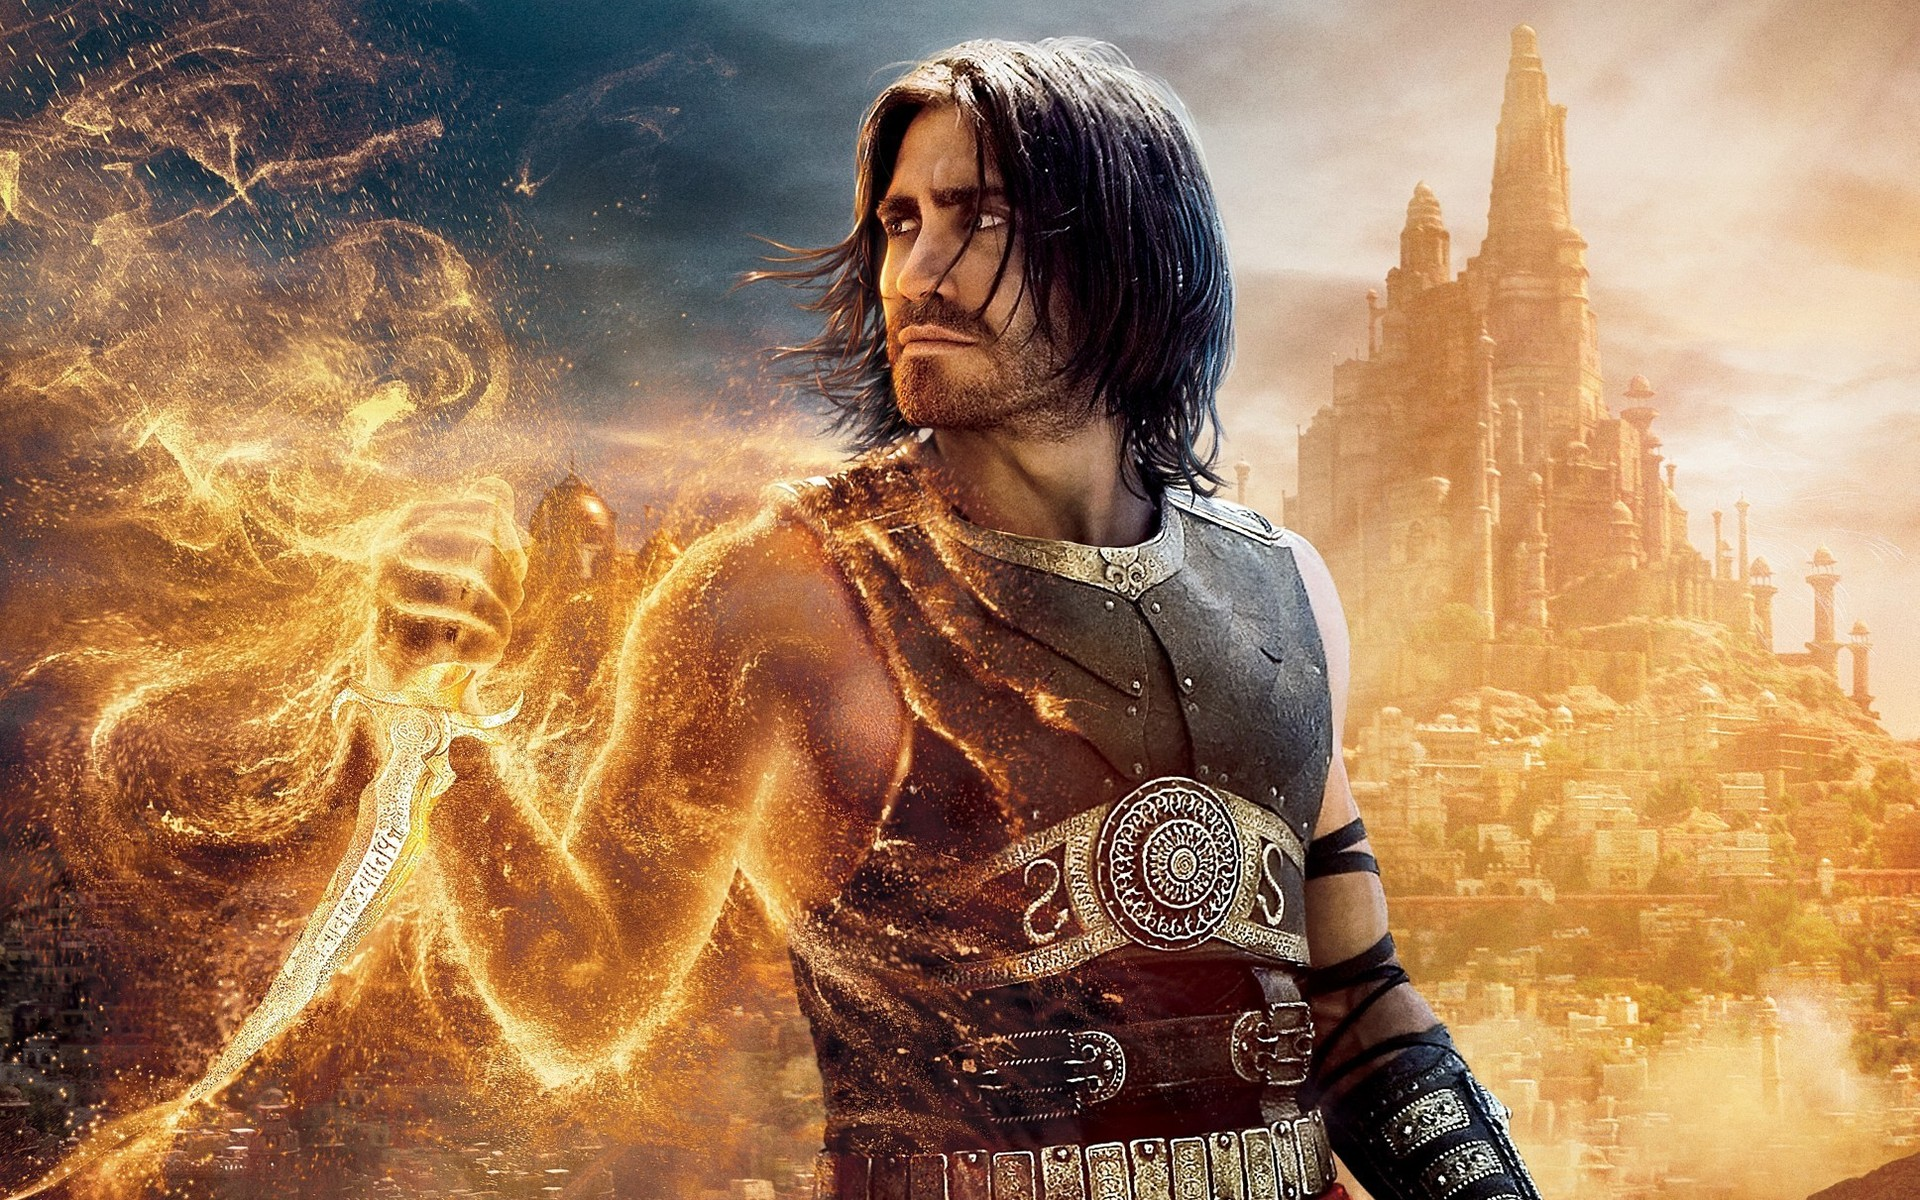 Prince of persia the sands of time hd wallpaper - Prince wallpaper ...